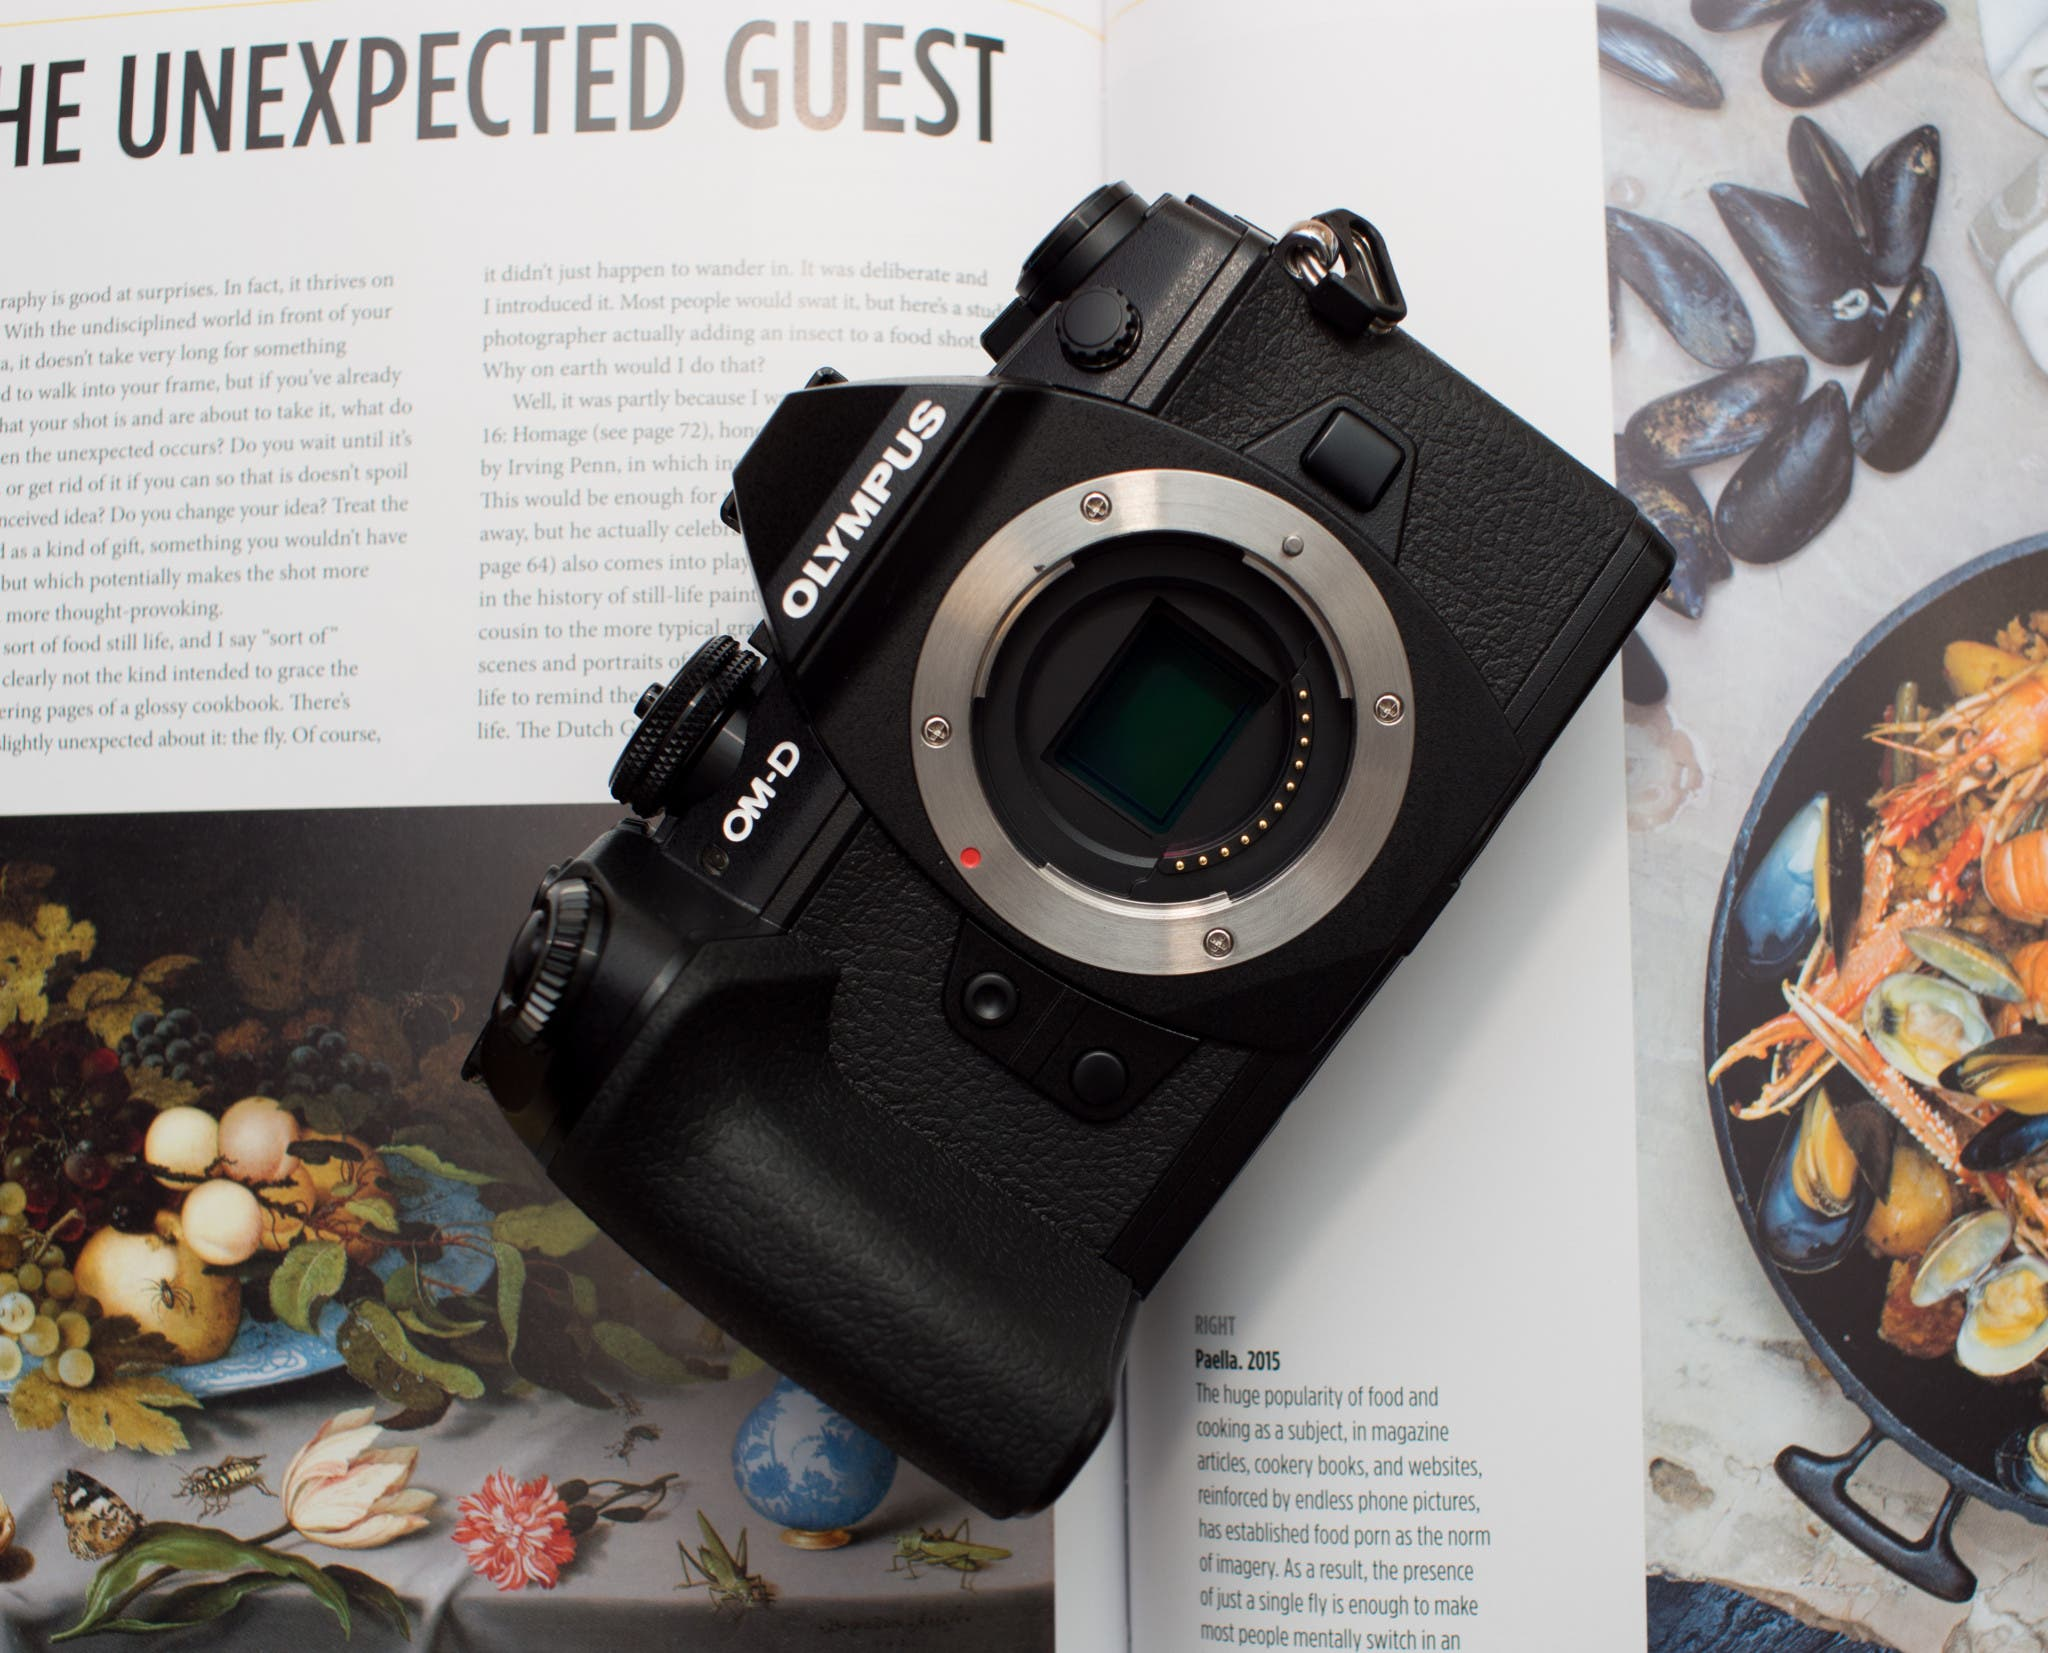 Extended First Look: The Olympus OM-D E-M1 Mark II